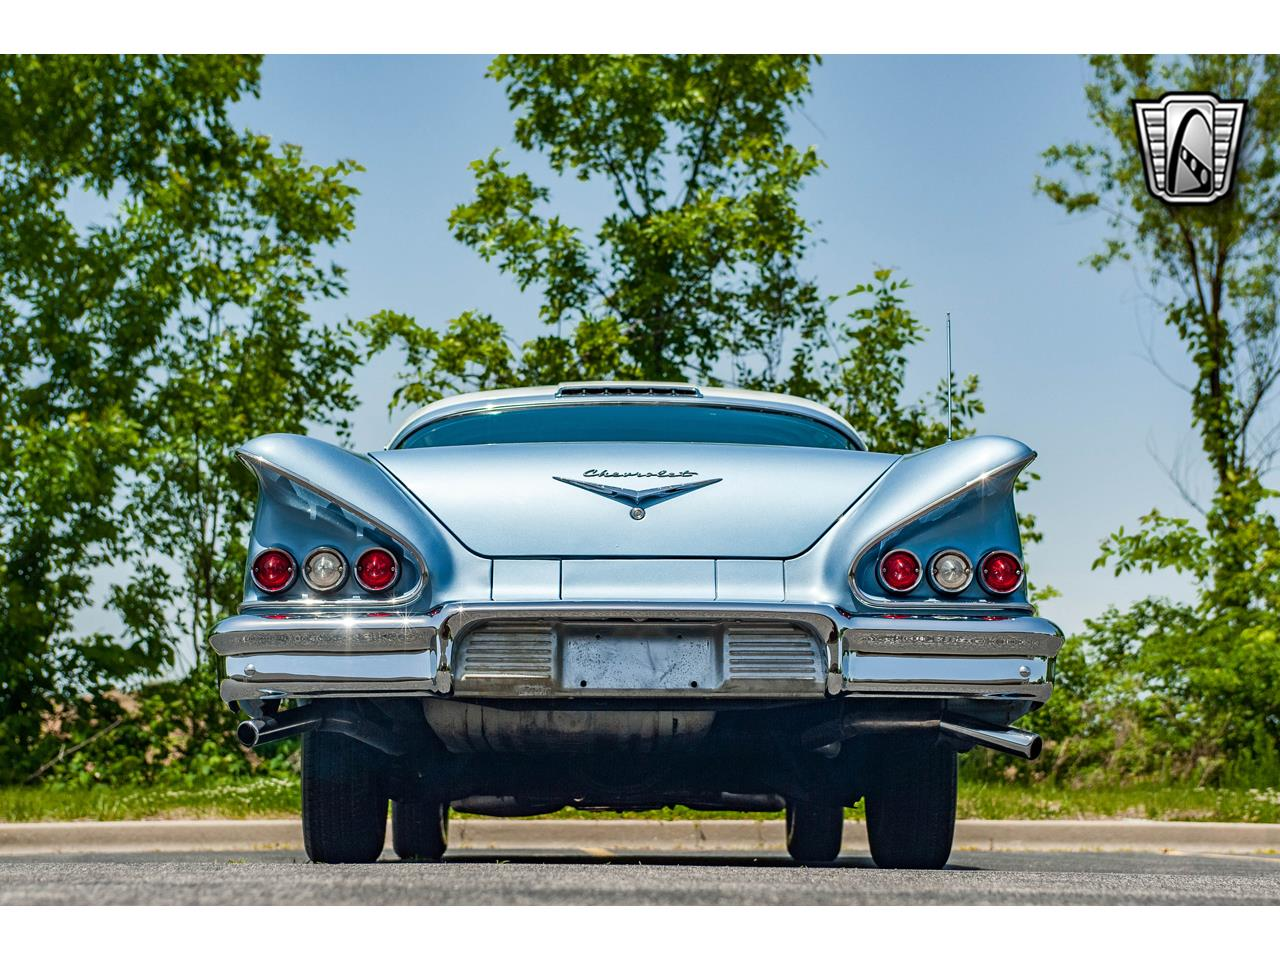 Large Picture of '58 Chevrolet Impala located in Illinois - $62,000.00 Offered by Gateway Classic Cars - St. Louis - QB9Q